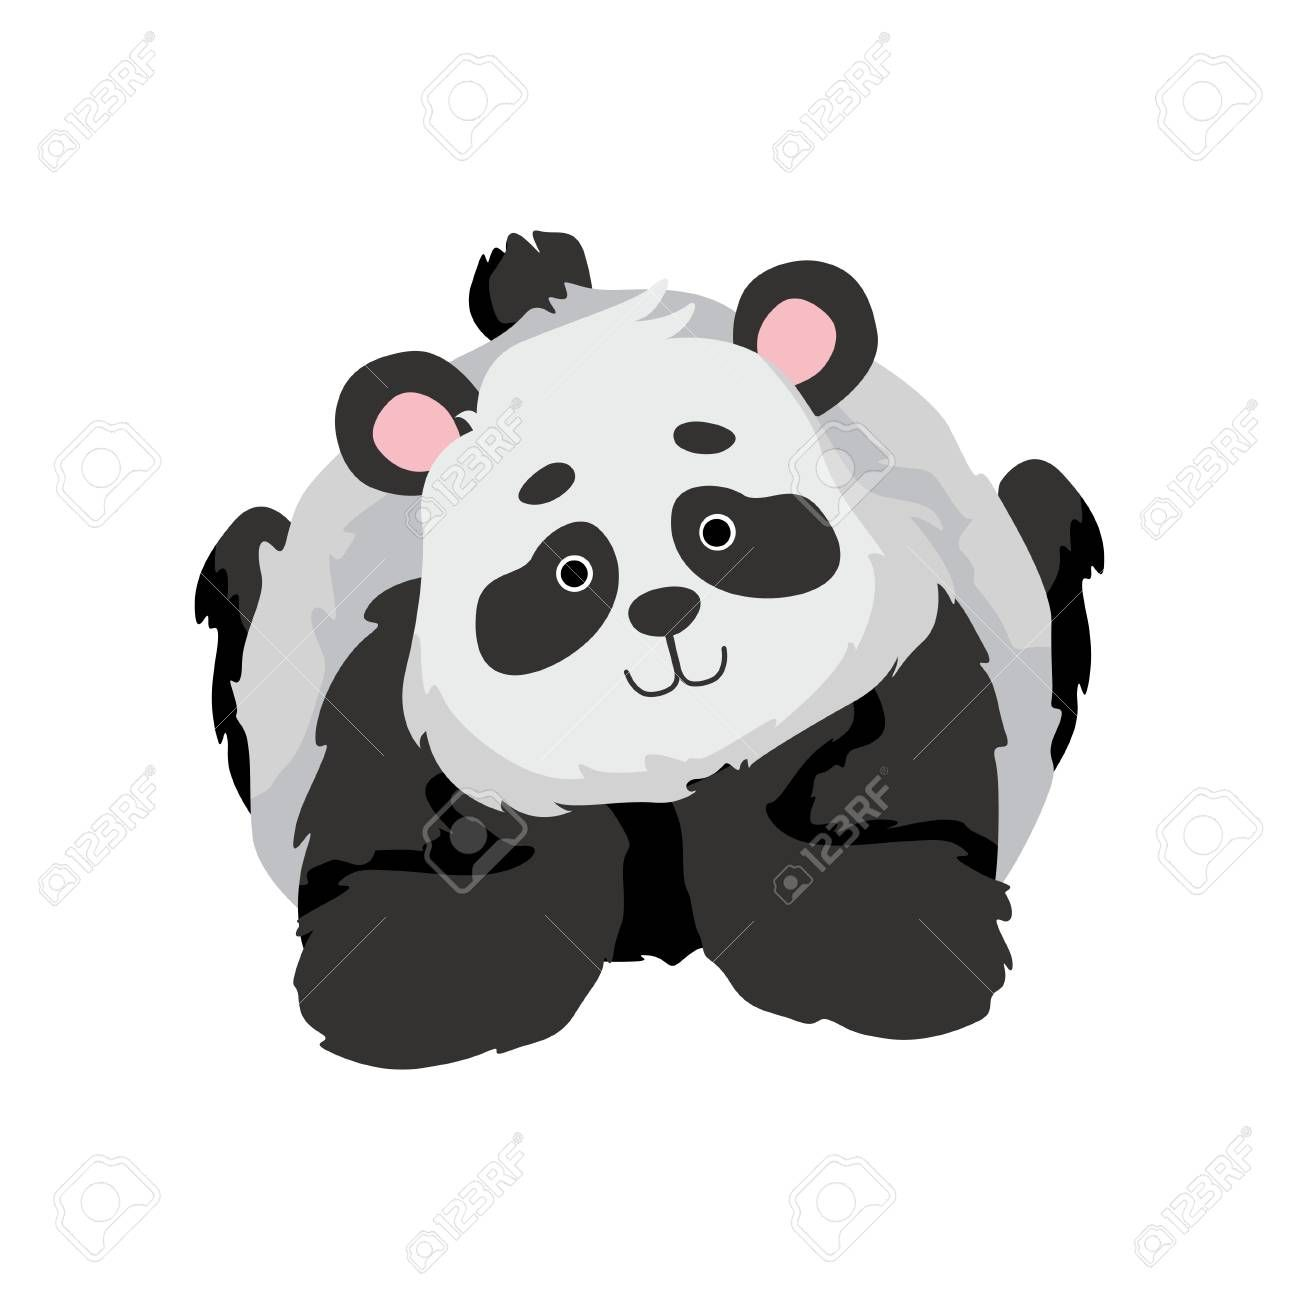 Cute Baby Panda Bear, Funny Lovely Animal Character Lying on His Stomach Vector Illustration on White Background. Illustration , #SPONSORED, #Funny, #Lovely, #Animal, #Bear, #Cute #babypandabears